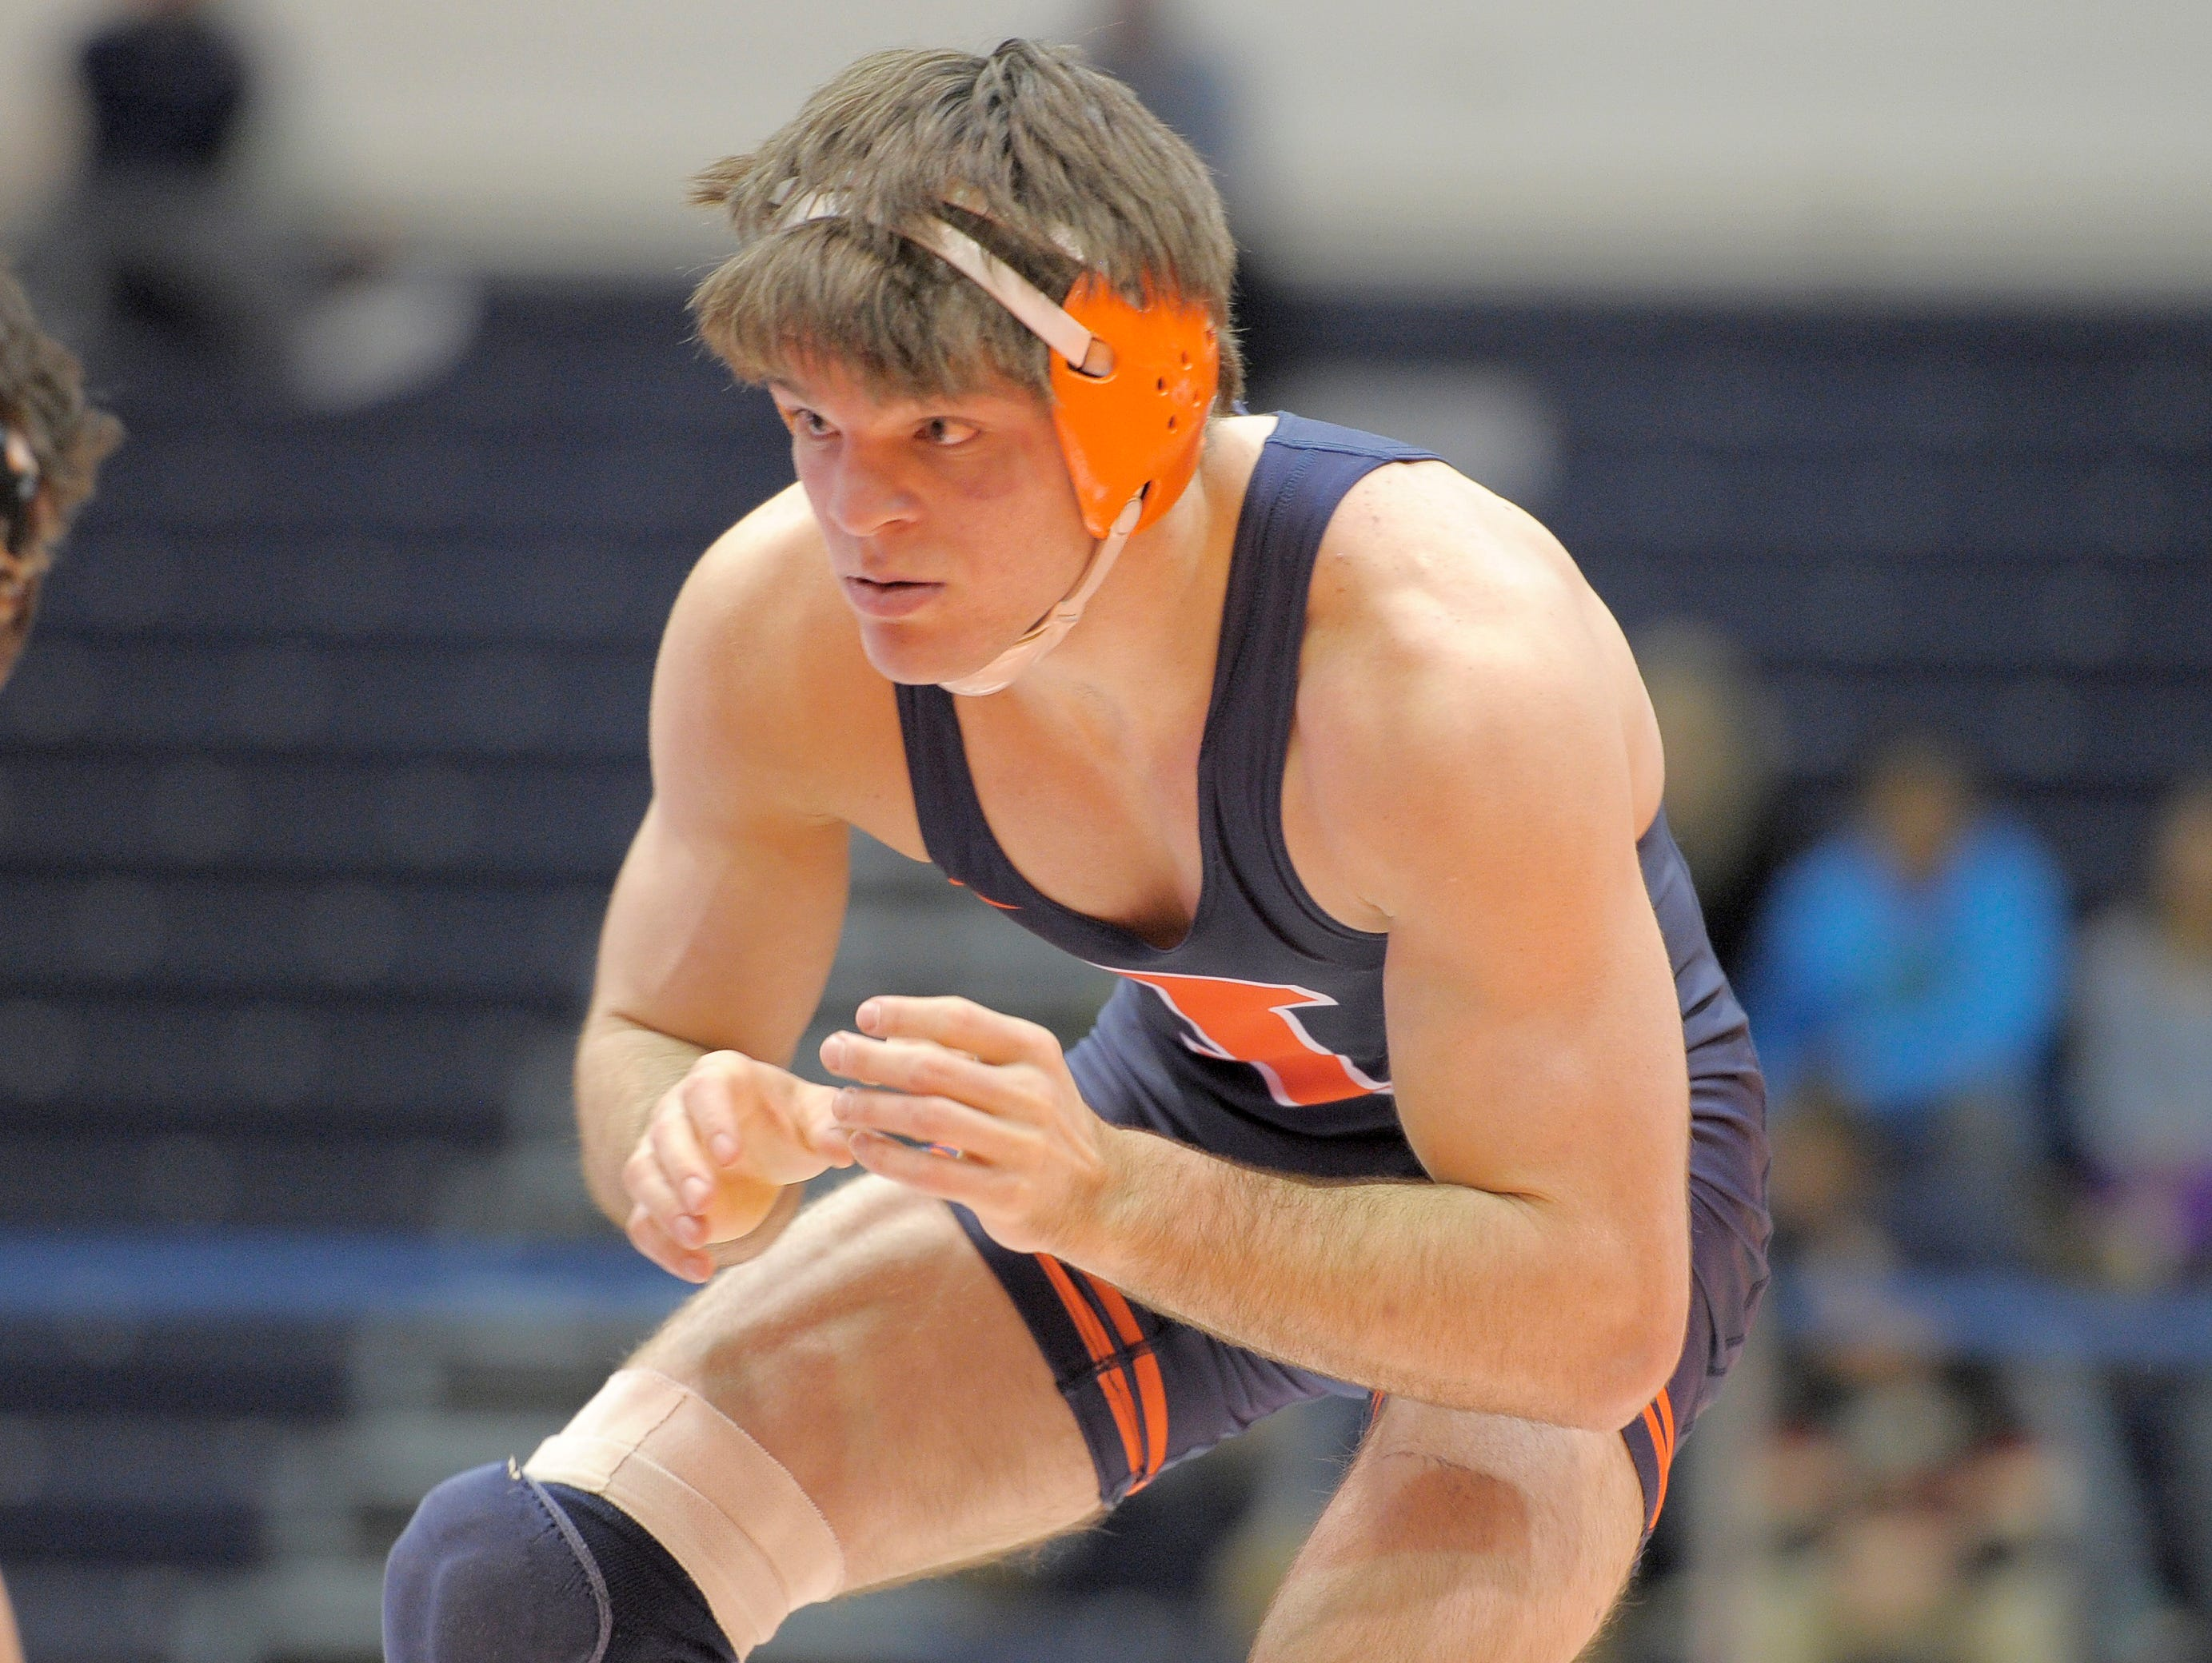 Illinois senior and Fox Lane graduate Steven Rodrigues is set to compete in the NCAA Division I wrestling championships at Madison Square Garden on March 17-19.